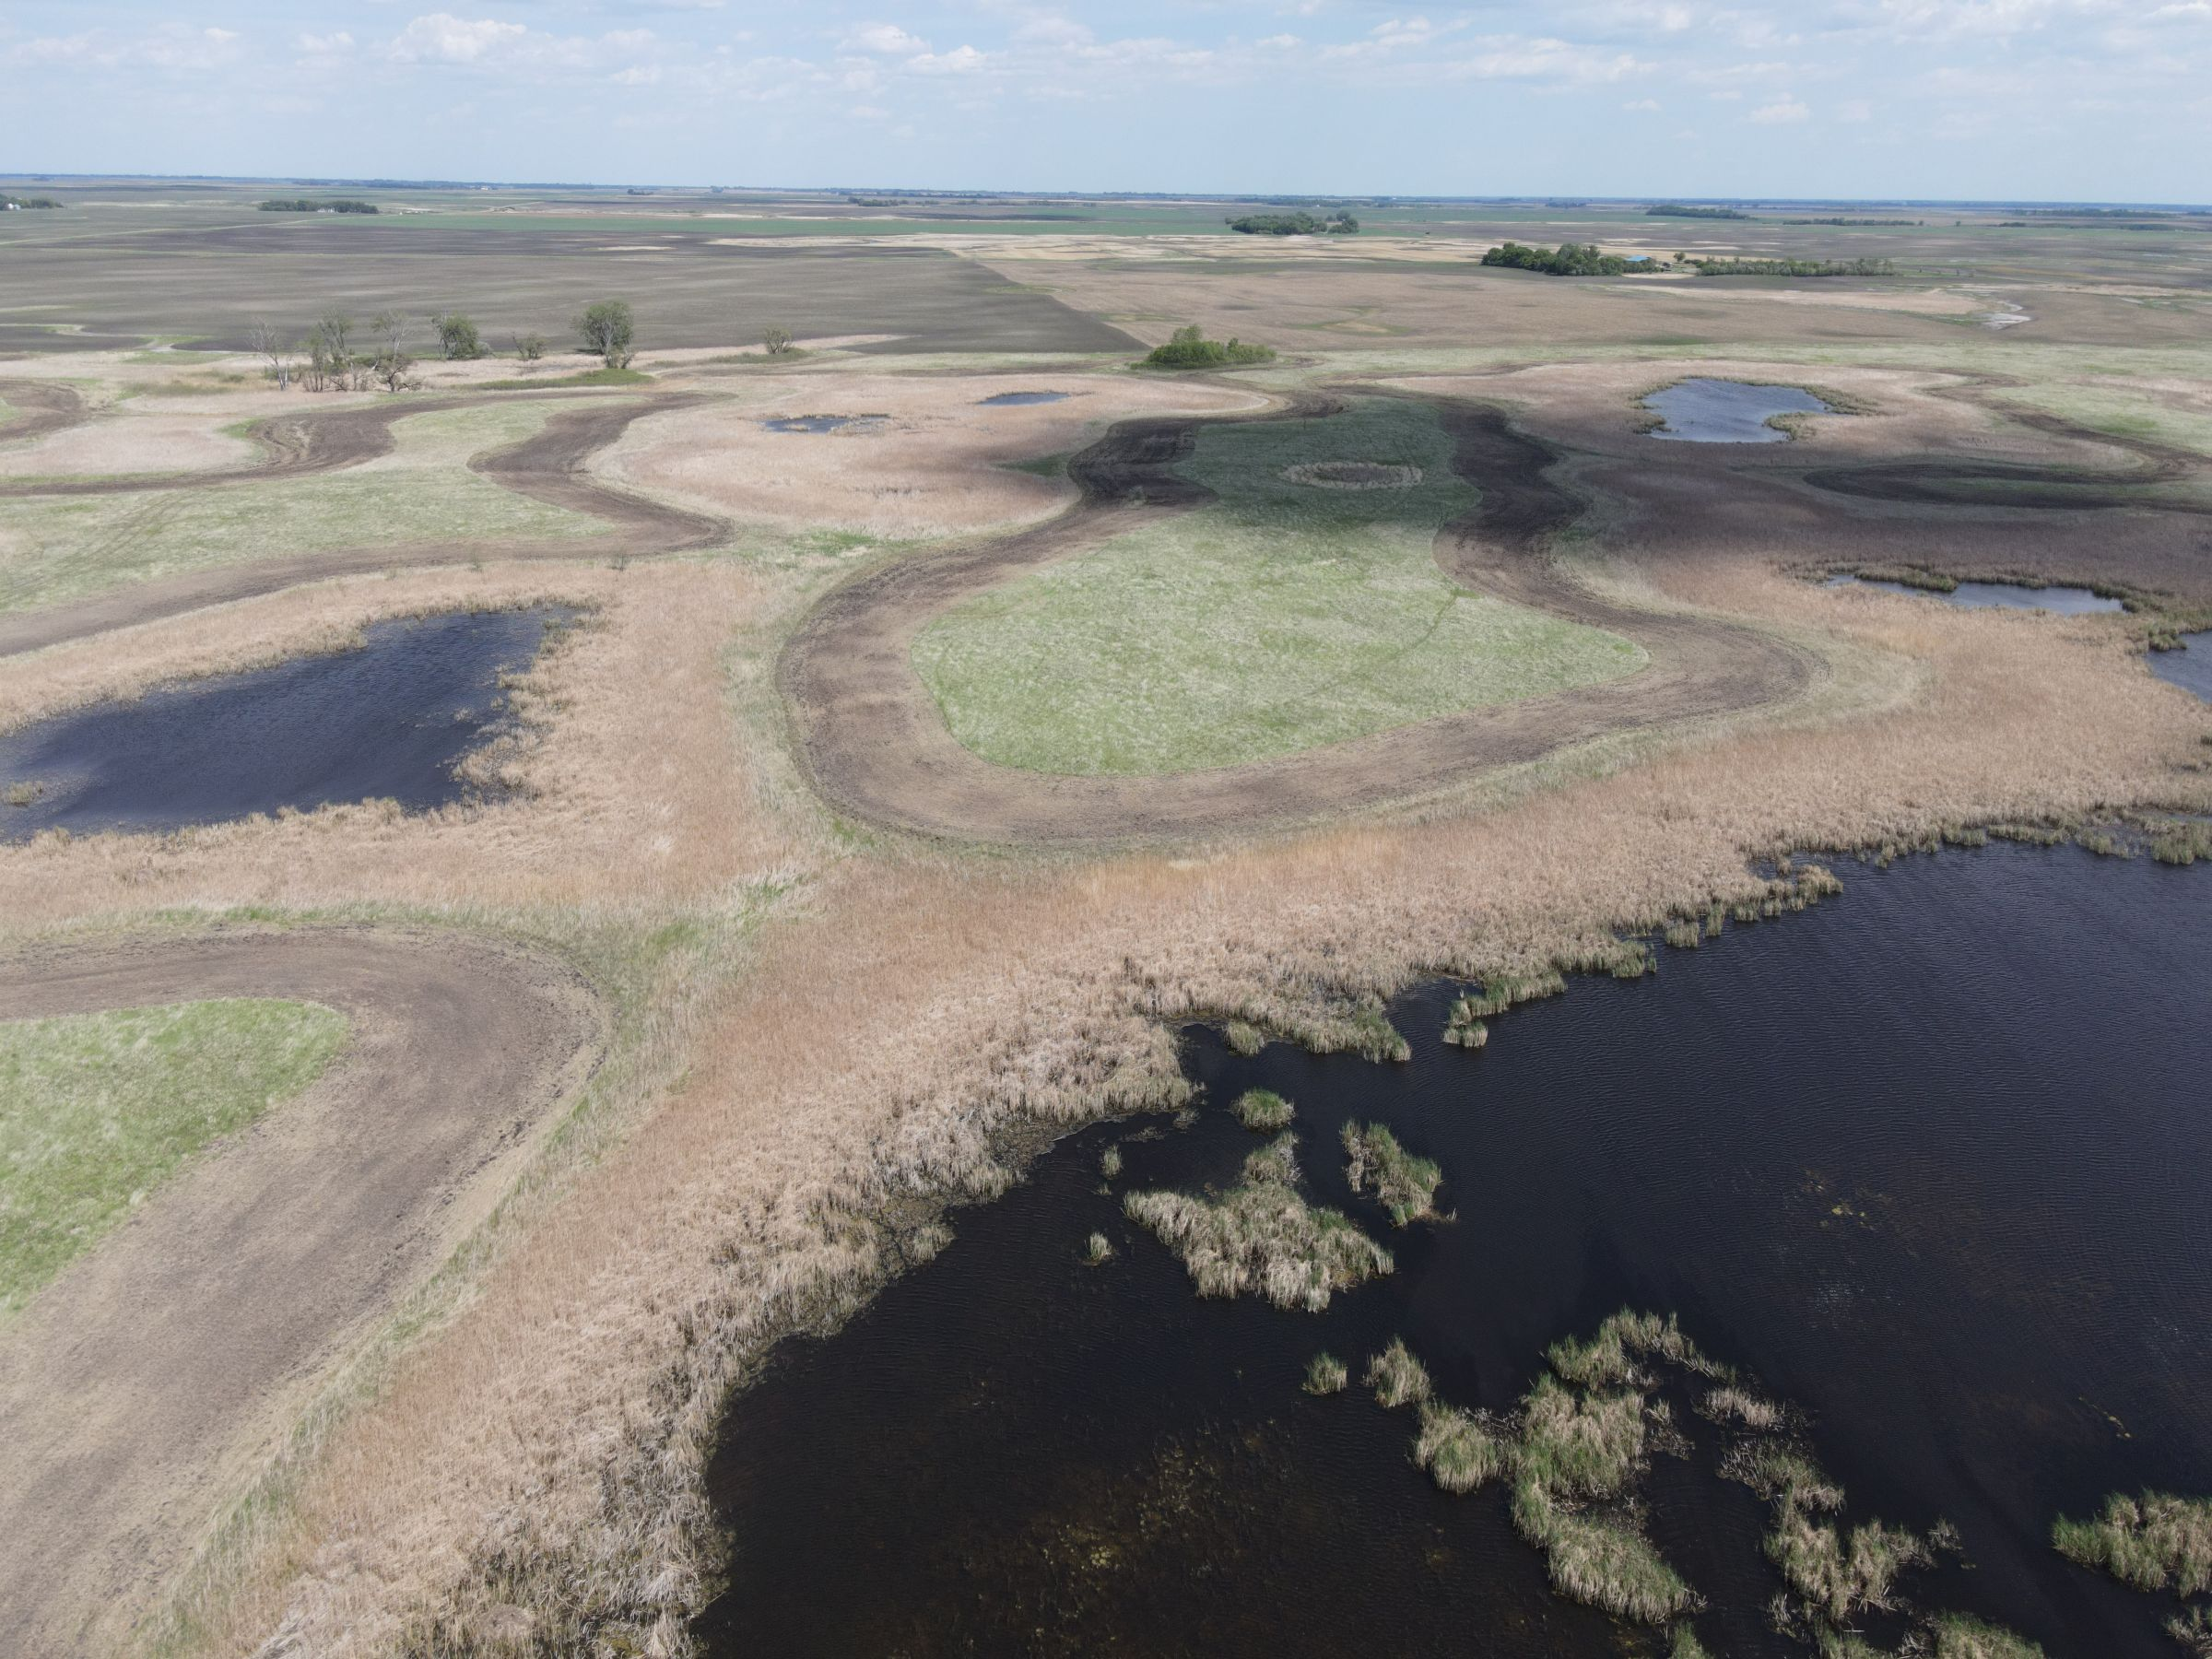 auctions-cass-county-north-dakota-320-acres-listing-number-15590-3-2021-06-22-191039.JPG